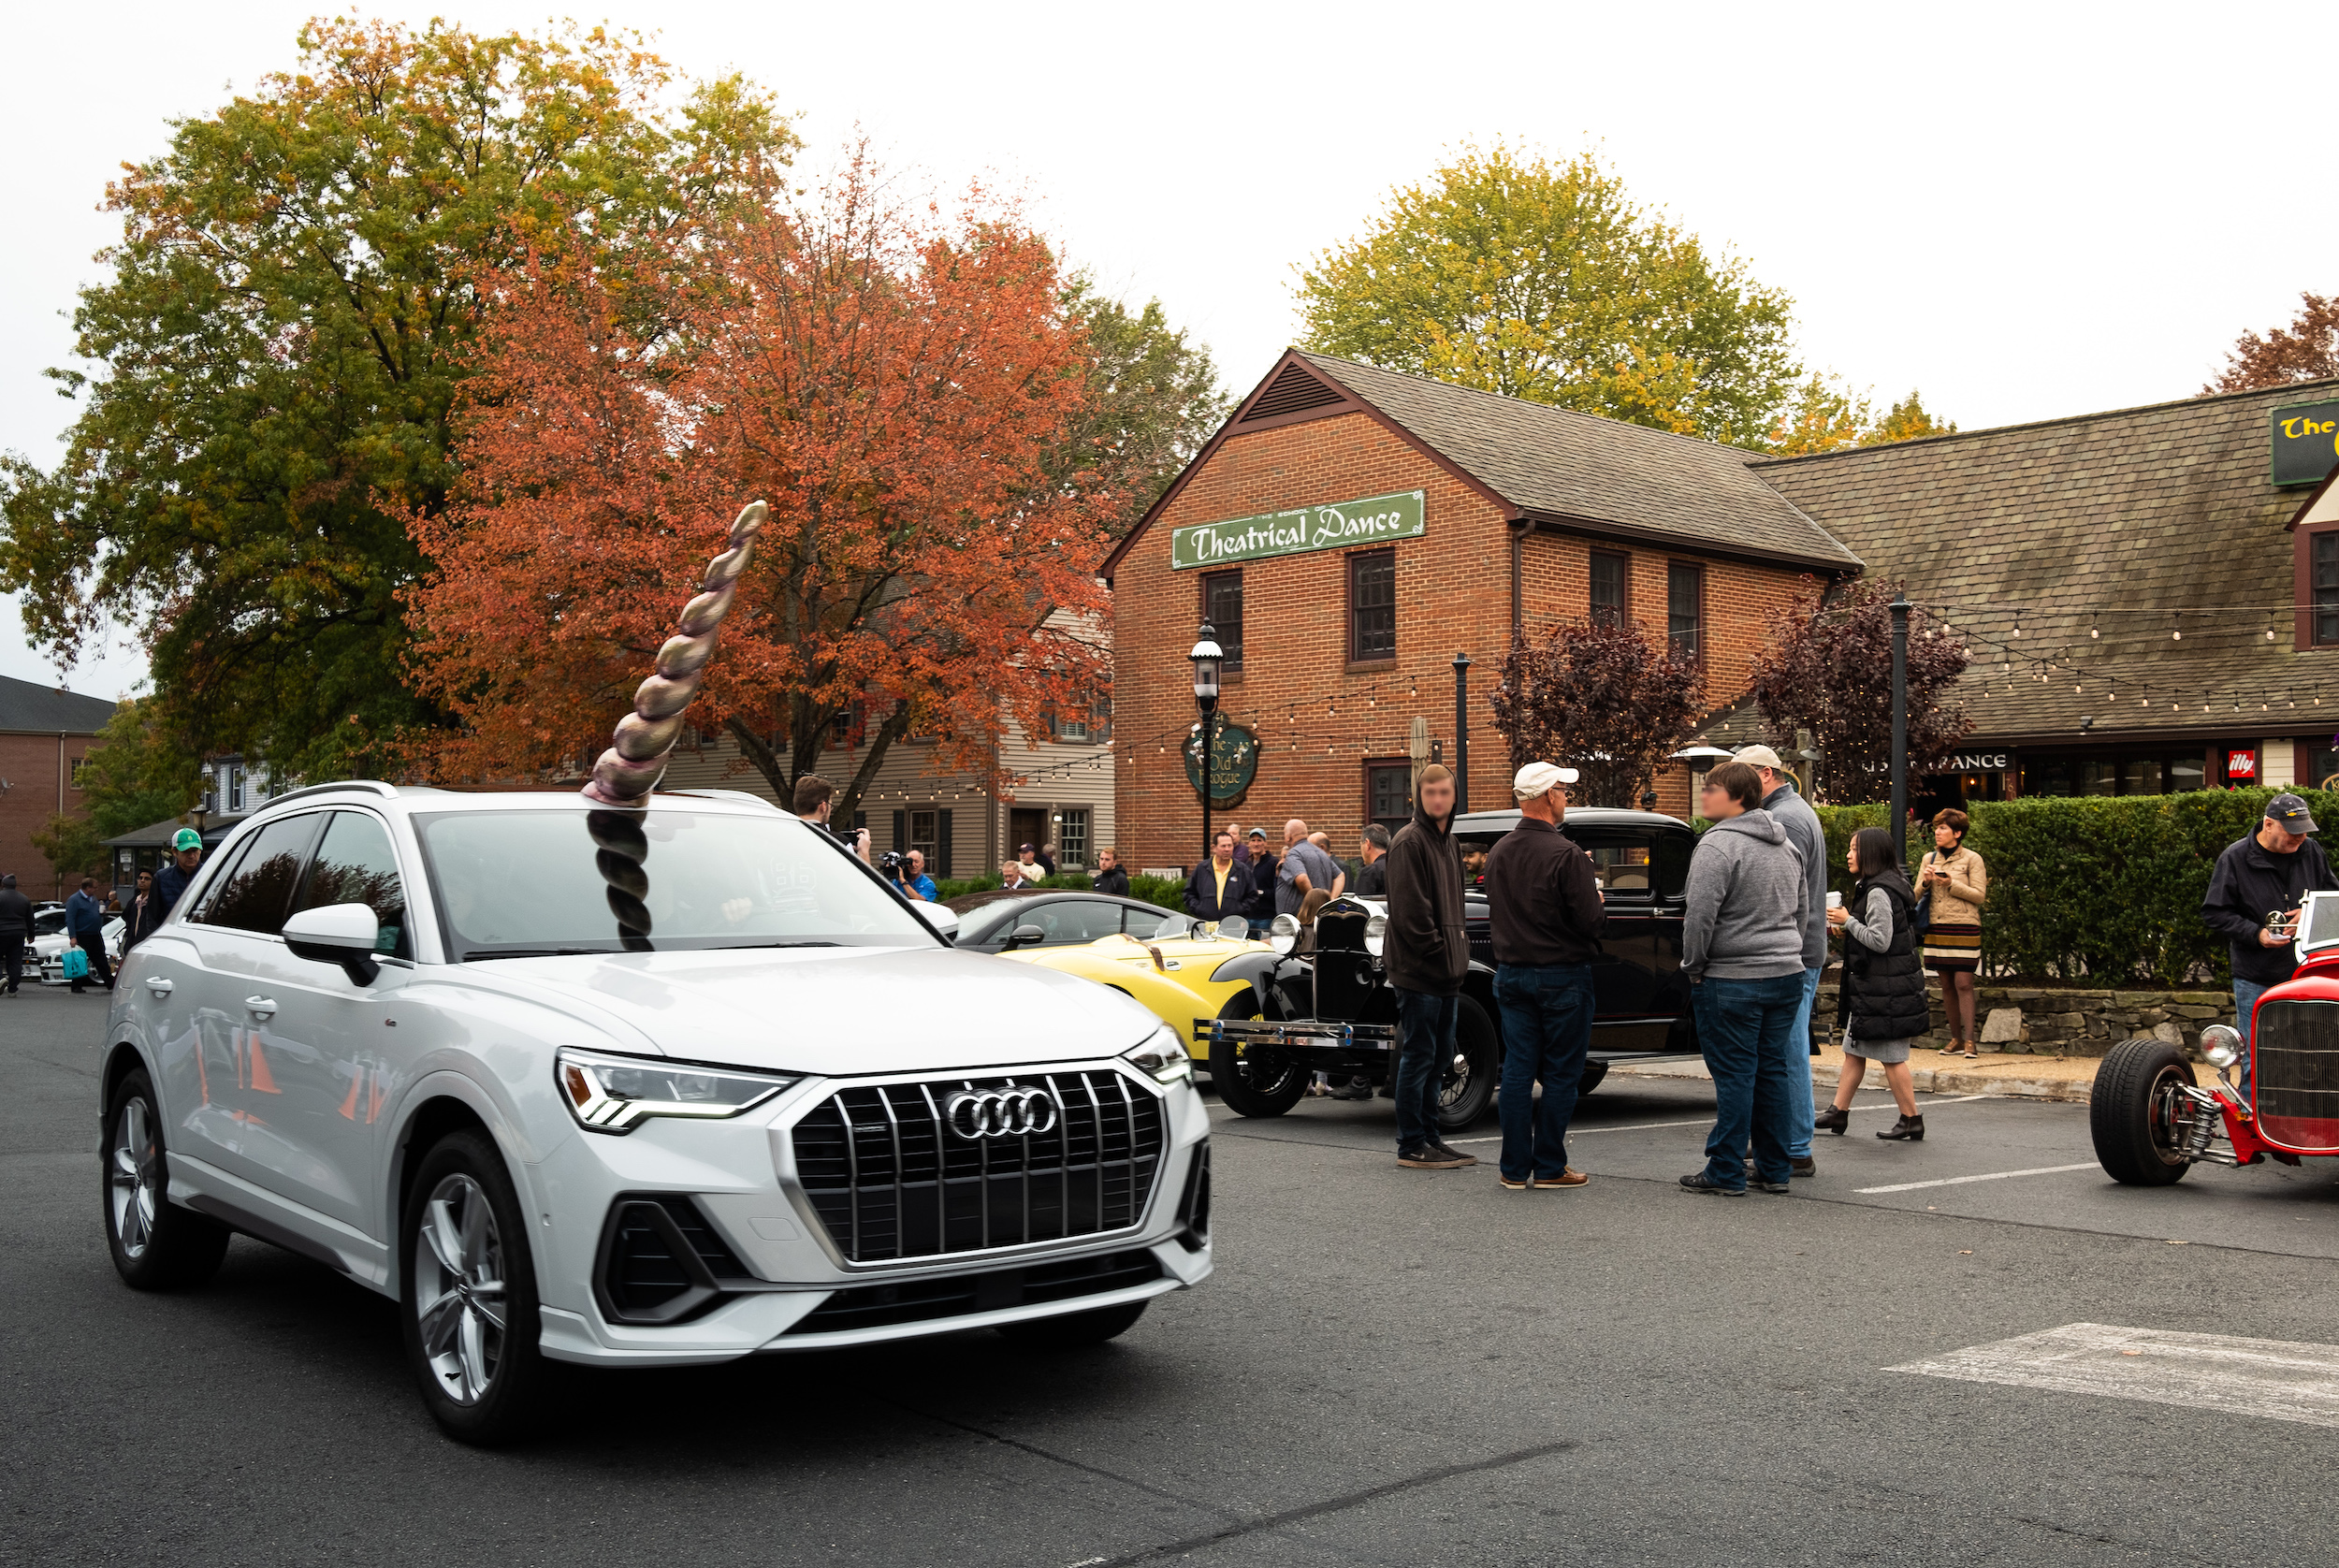 Audi brings the Audi Q3 unicorn inspired social media post to life for those who Hold Nothing Back 6288 1024x686 - Audi Q3 celebrates Halloween by dressing as a unicorn